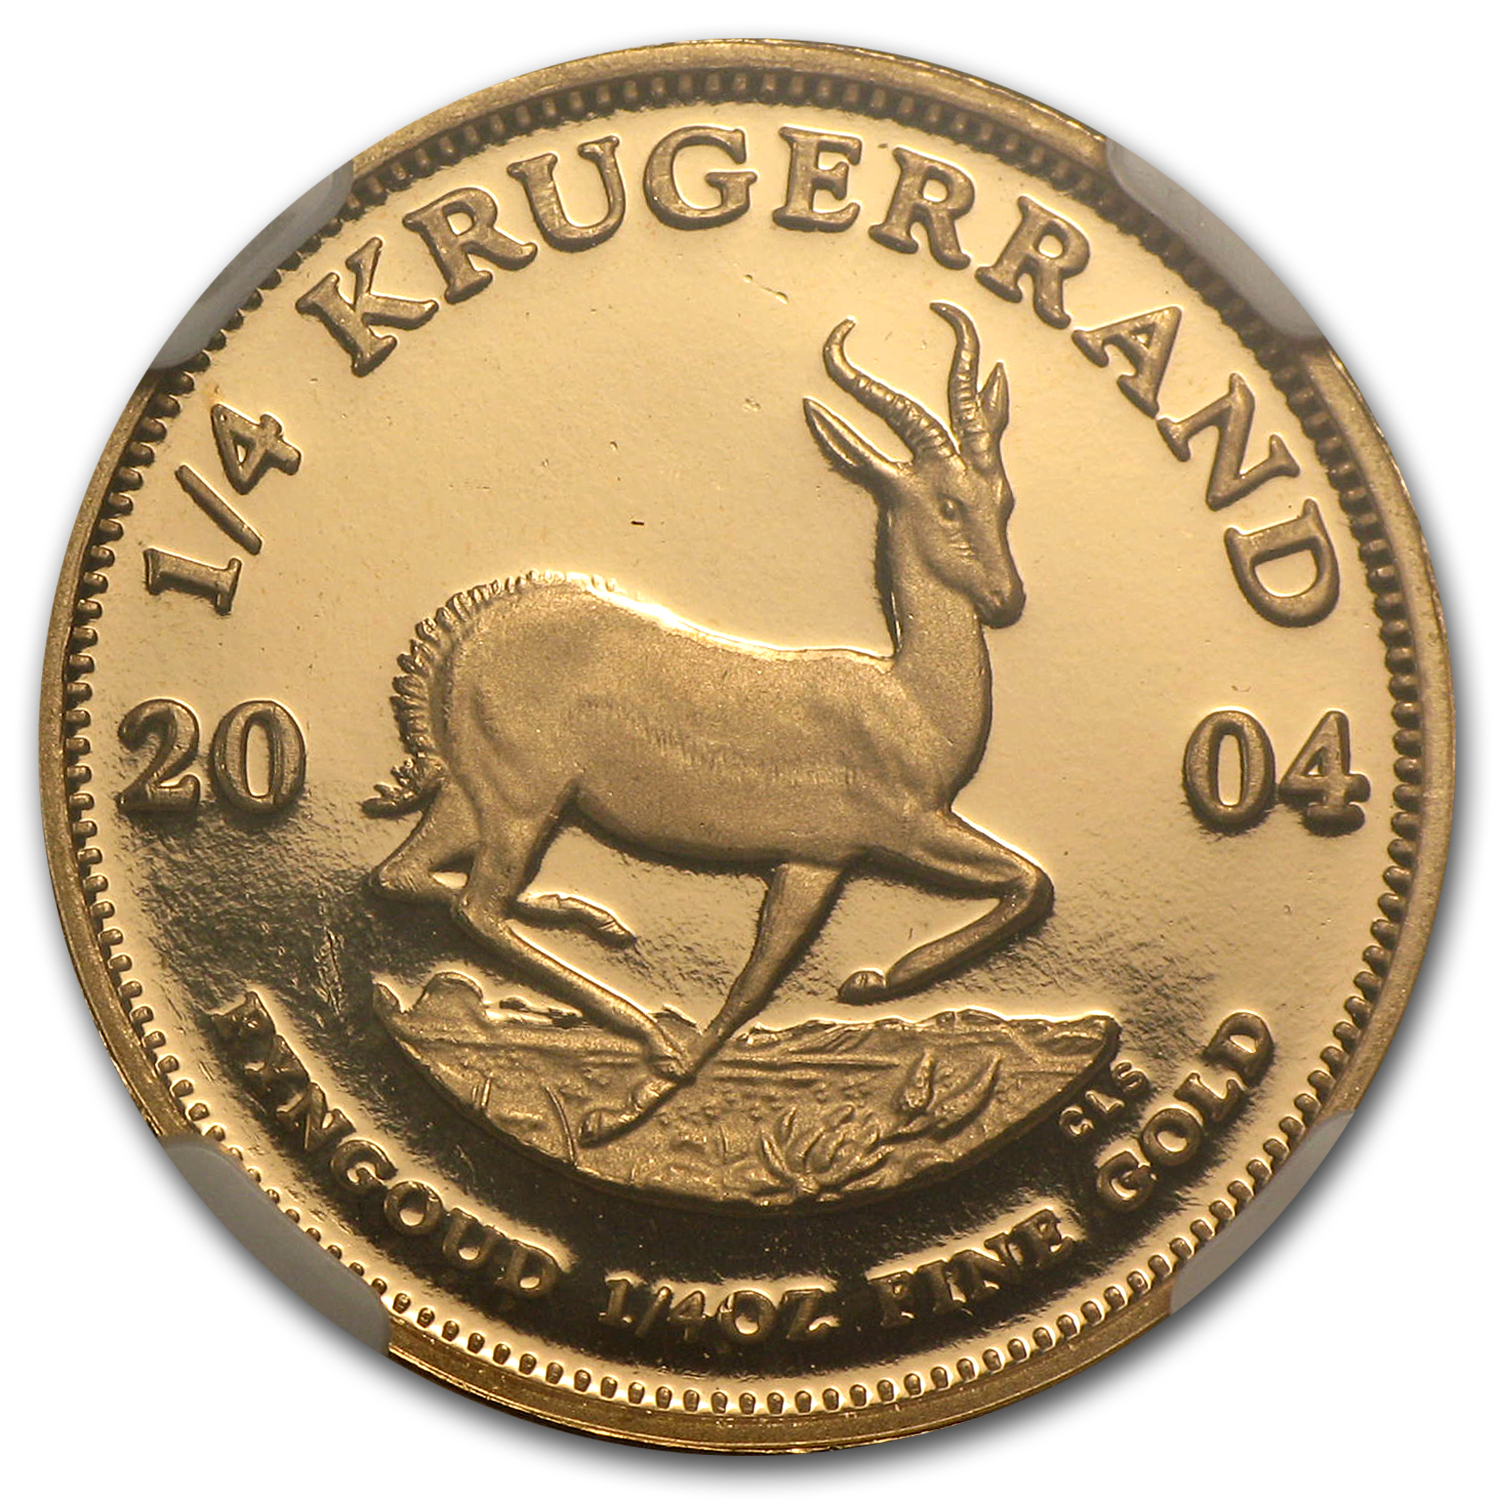 2004 1/4 oz Gold South African Krugerrand PF-66 NGC